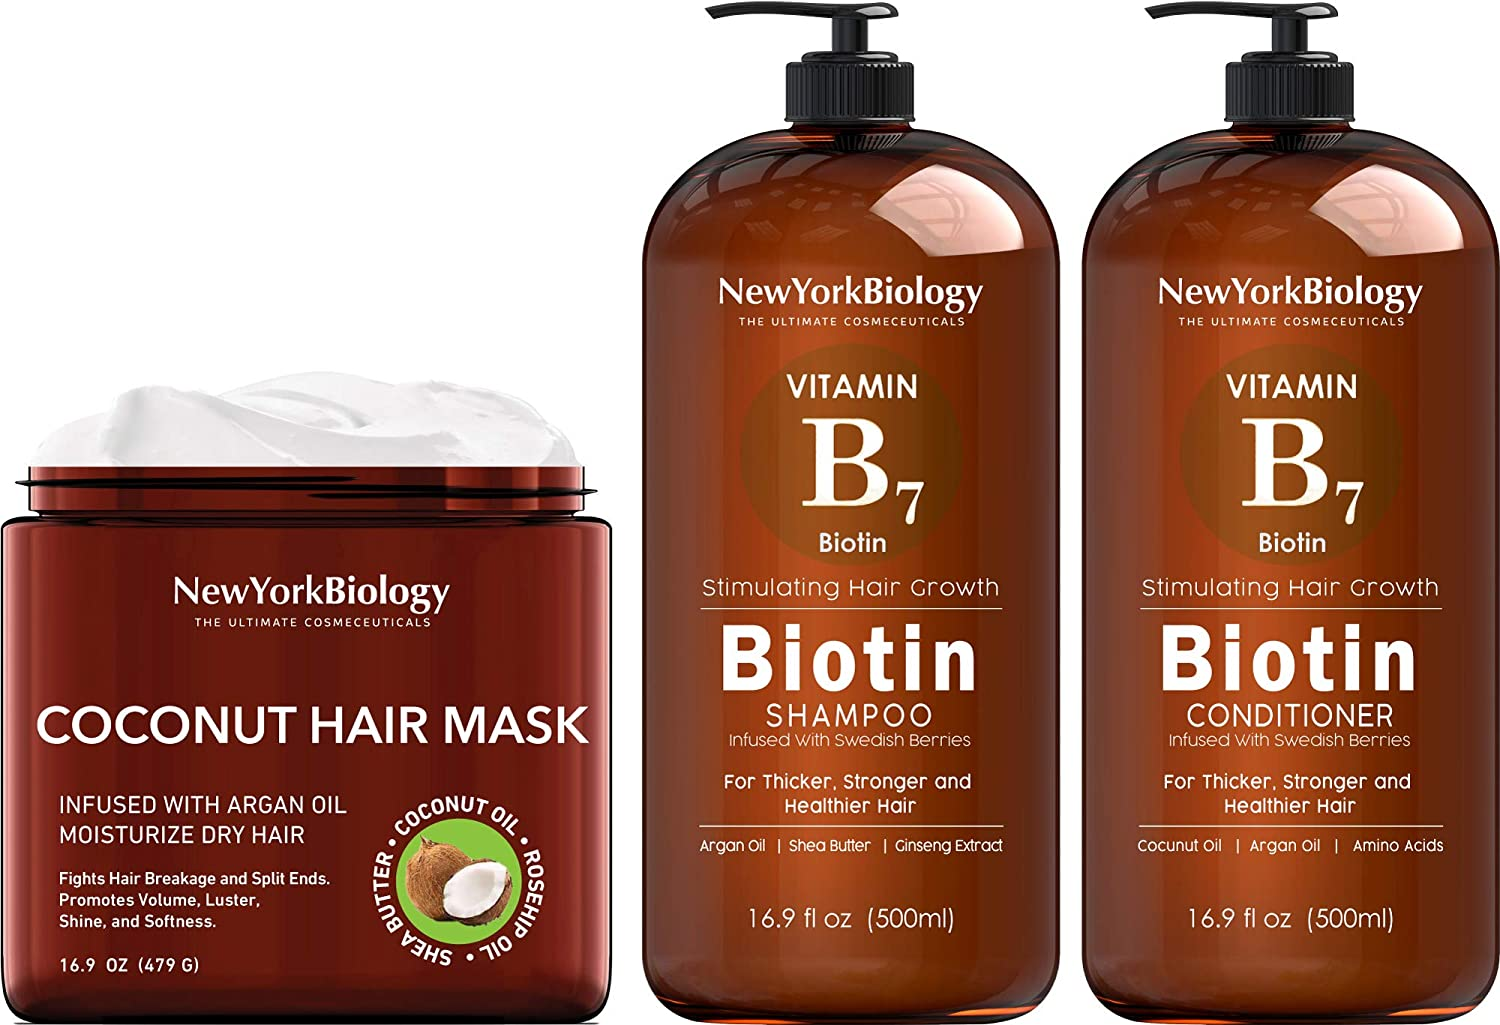 New York Biology Coconut Hair Mask & Biotin Shampoo and Conditioner Set for Hair Growth and Volume – Anti Dandruff Thickening Shampoo for Hair Loss and Thinning Hair – Moisturizing Dry Hair Treatment